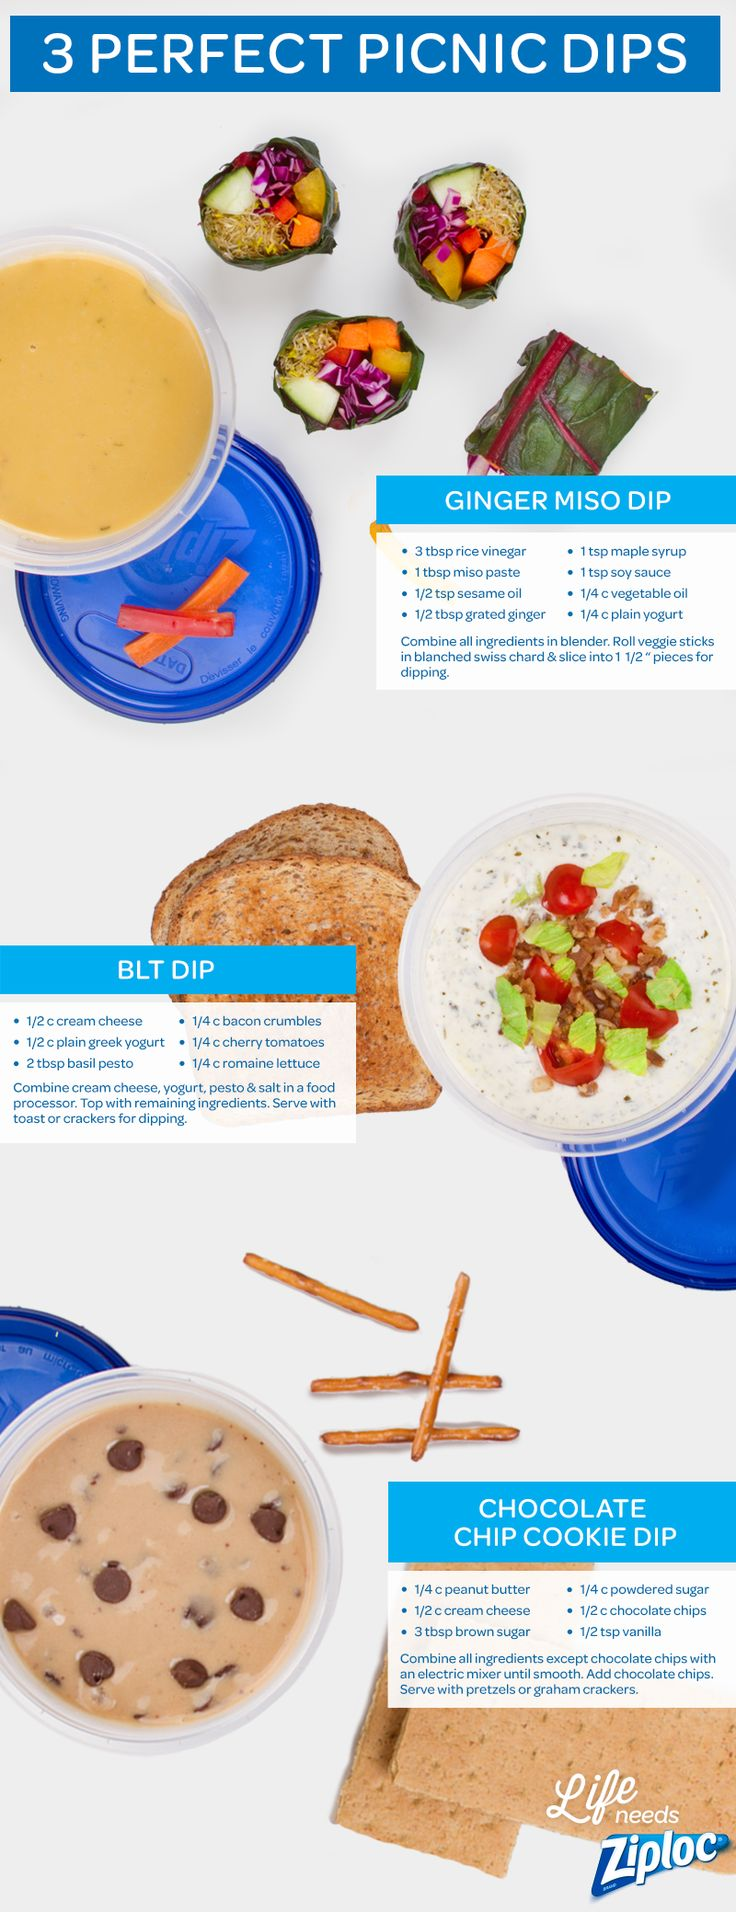 These fun picnic ideas turn your favorite summer recipes into finger food. Ginger miso dip is great with salad roll-ups. Serve BLT dip with toast or crackers. Chocolate chip cookie dip with a yummy peanut butter twist tastes great with graham crackers or pretzels. Taking these easy homemade dips to go in a Ziploc® container is a less messy way to picnic for kids or couples. They're also a creative way to take an appetizer, sandwich or dessert to a Fourth of July or Memorial Day party.